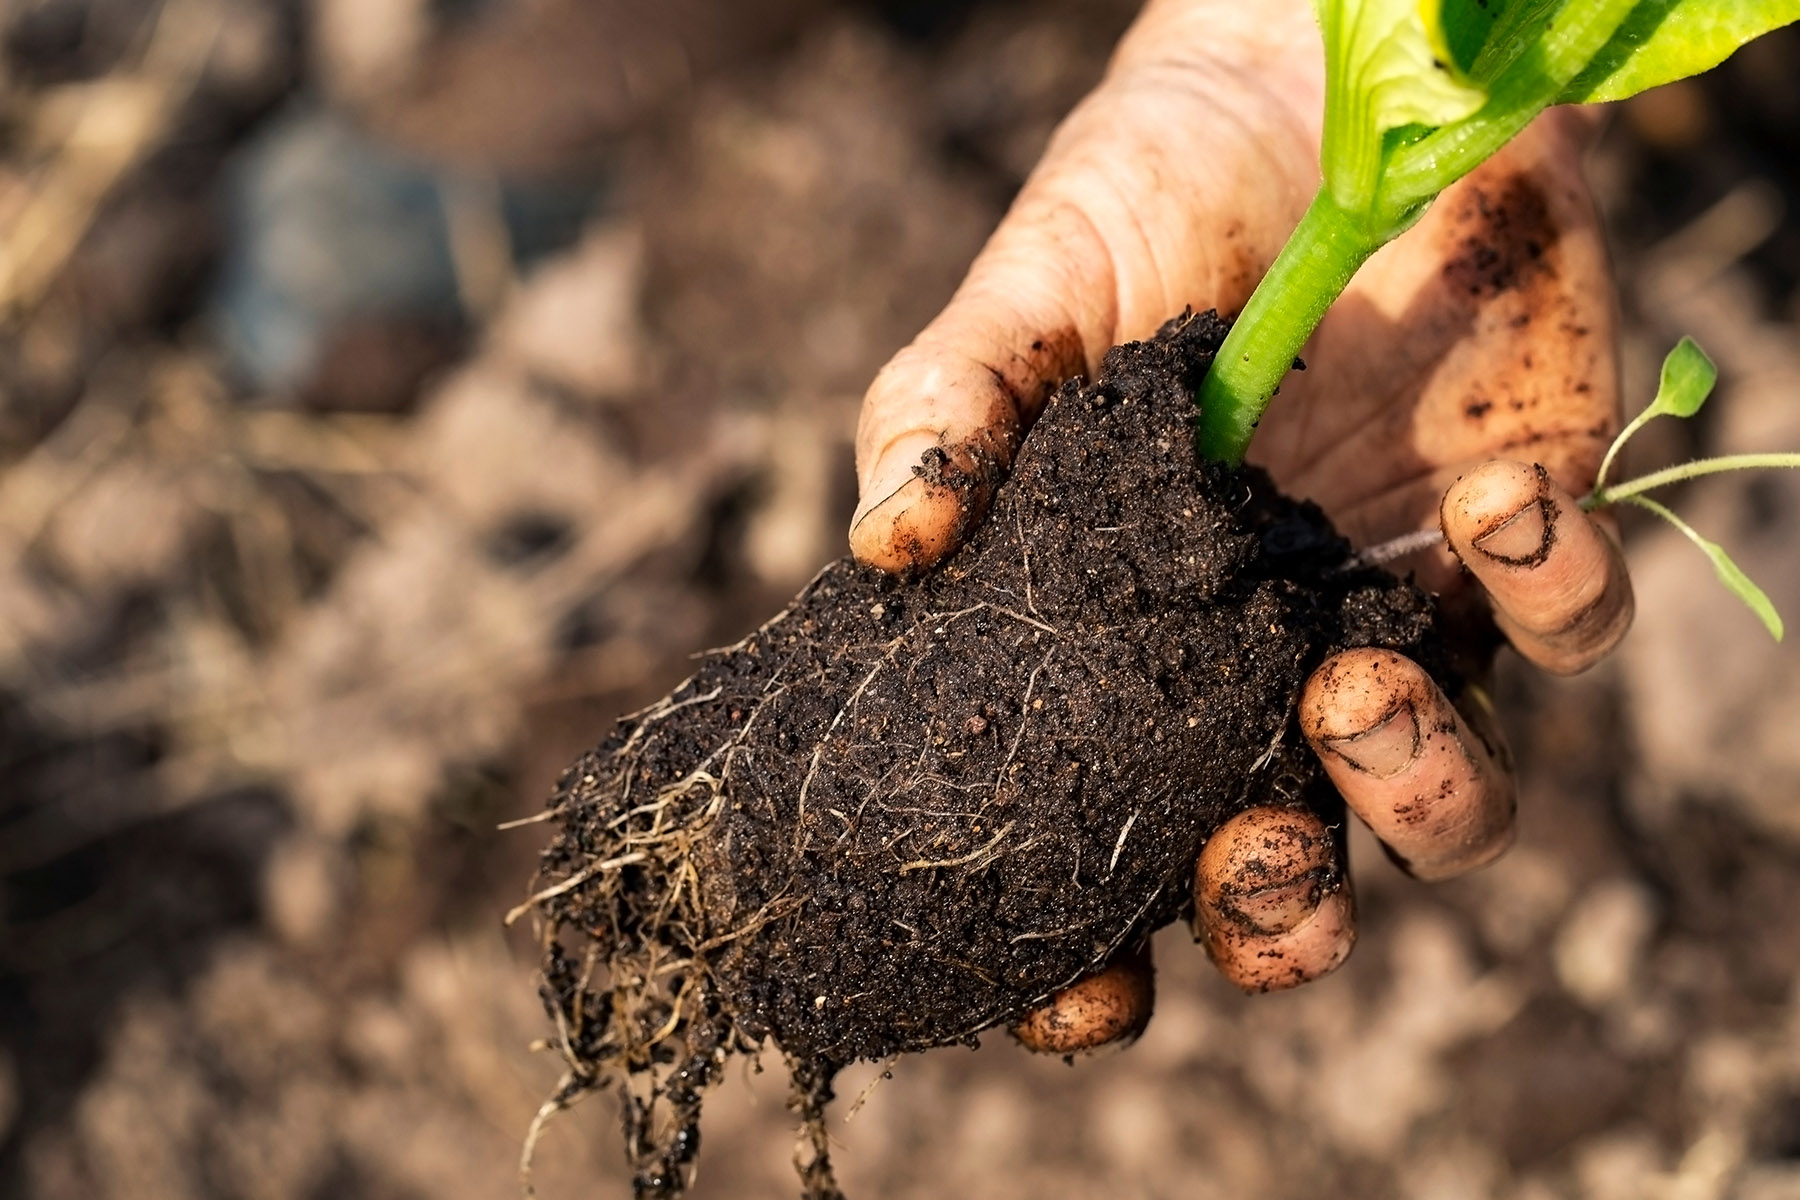 10. Healthy soil is important, but what does it look like